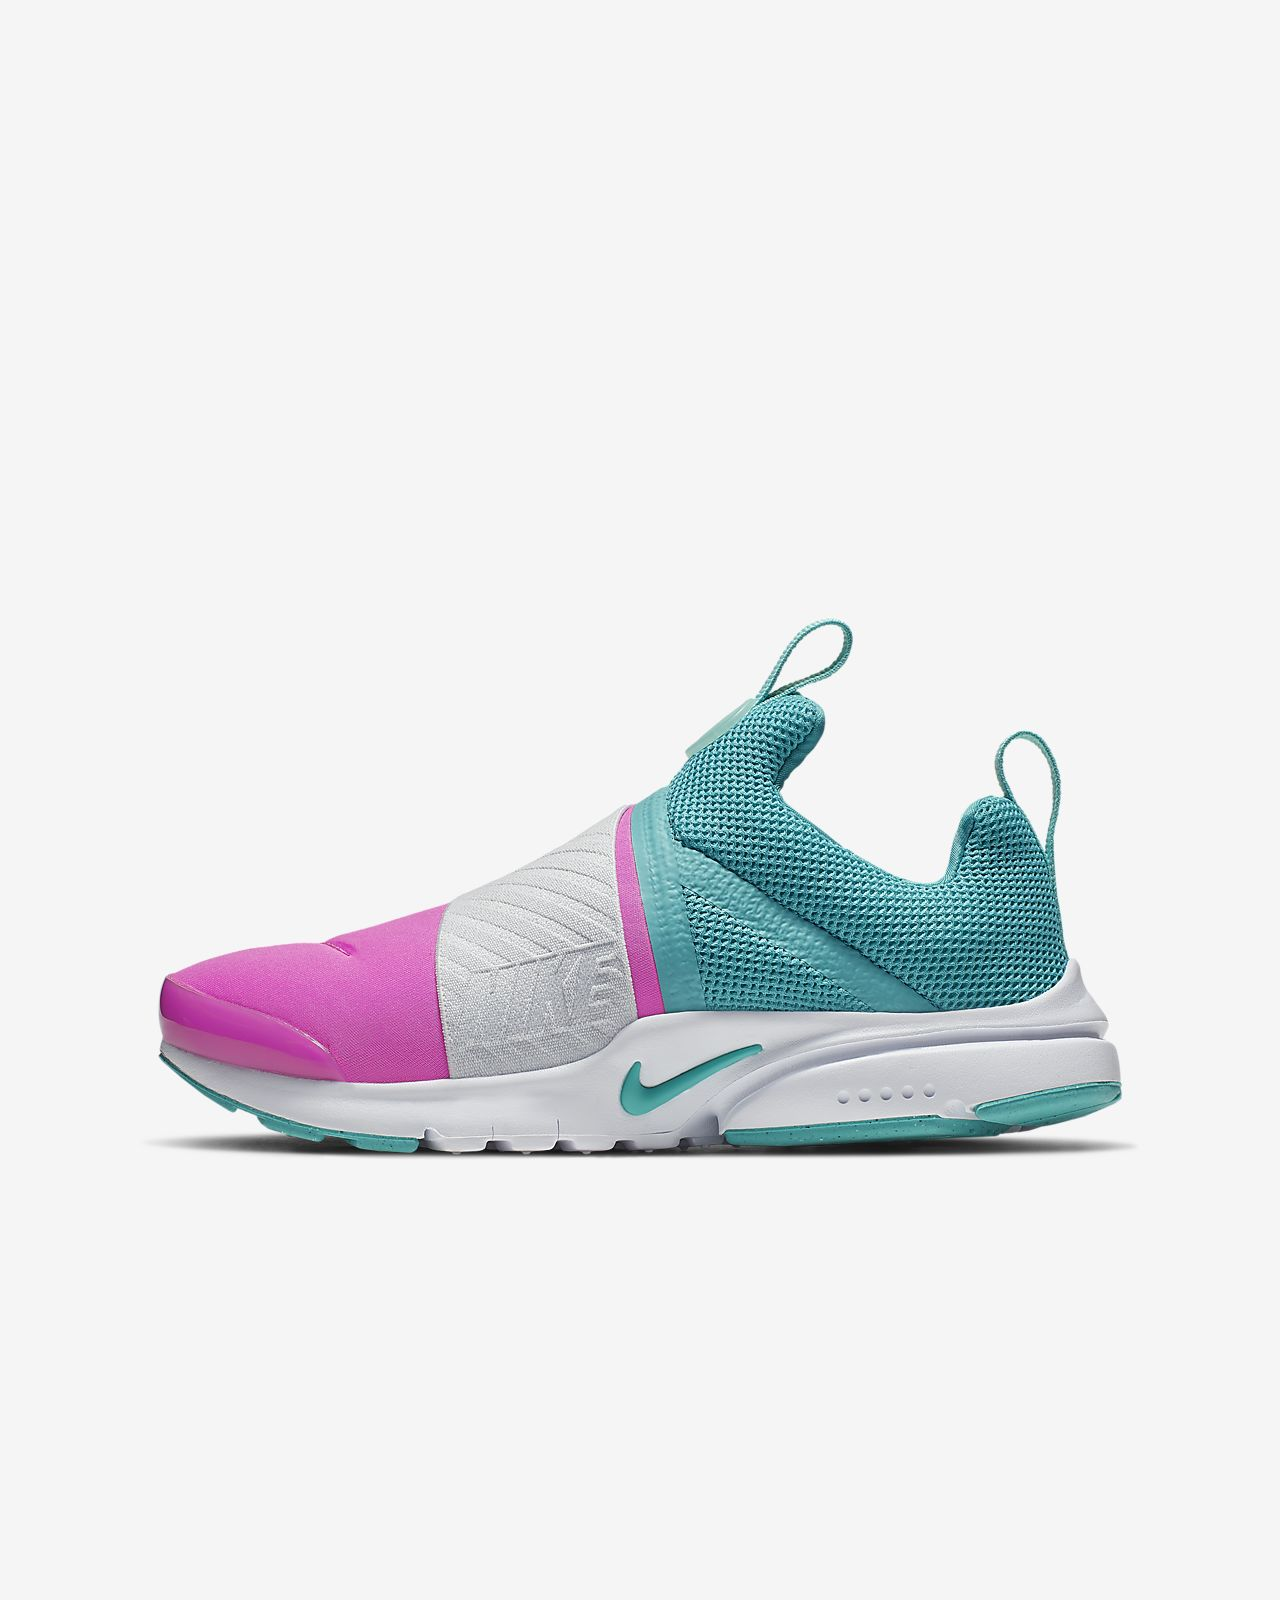 Nike Presto Extreme Big Kids' Shoe